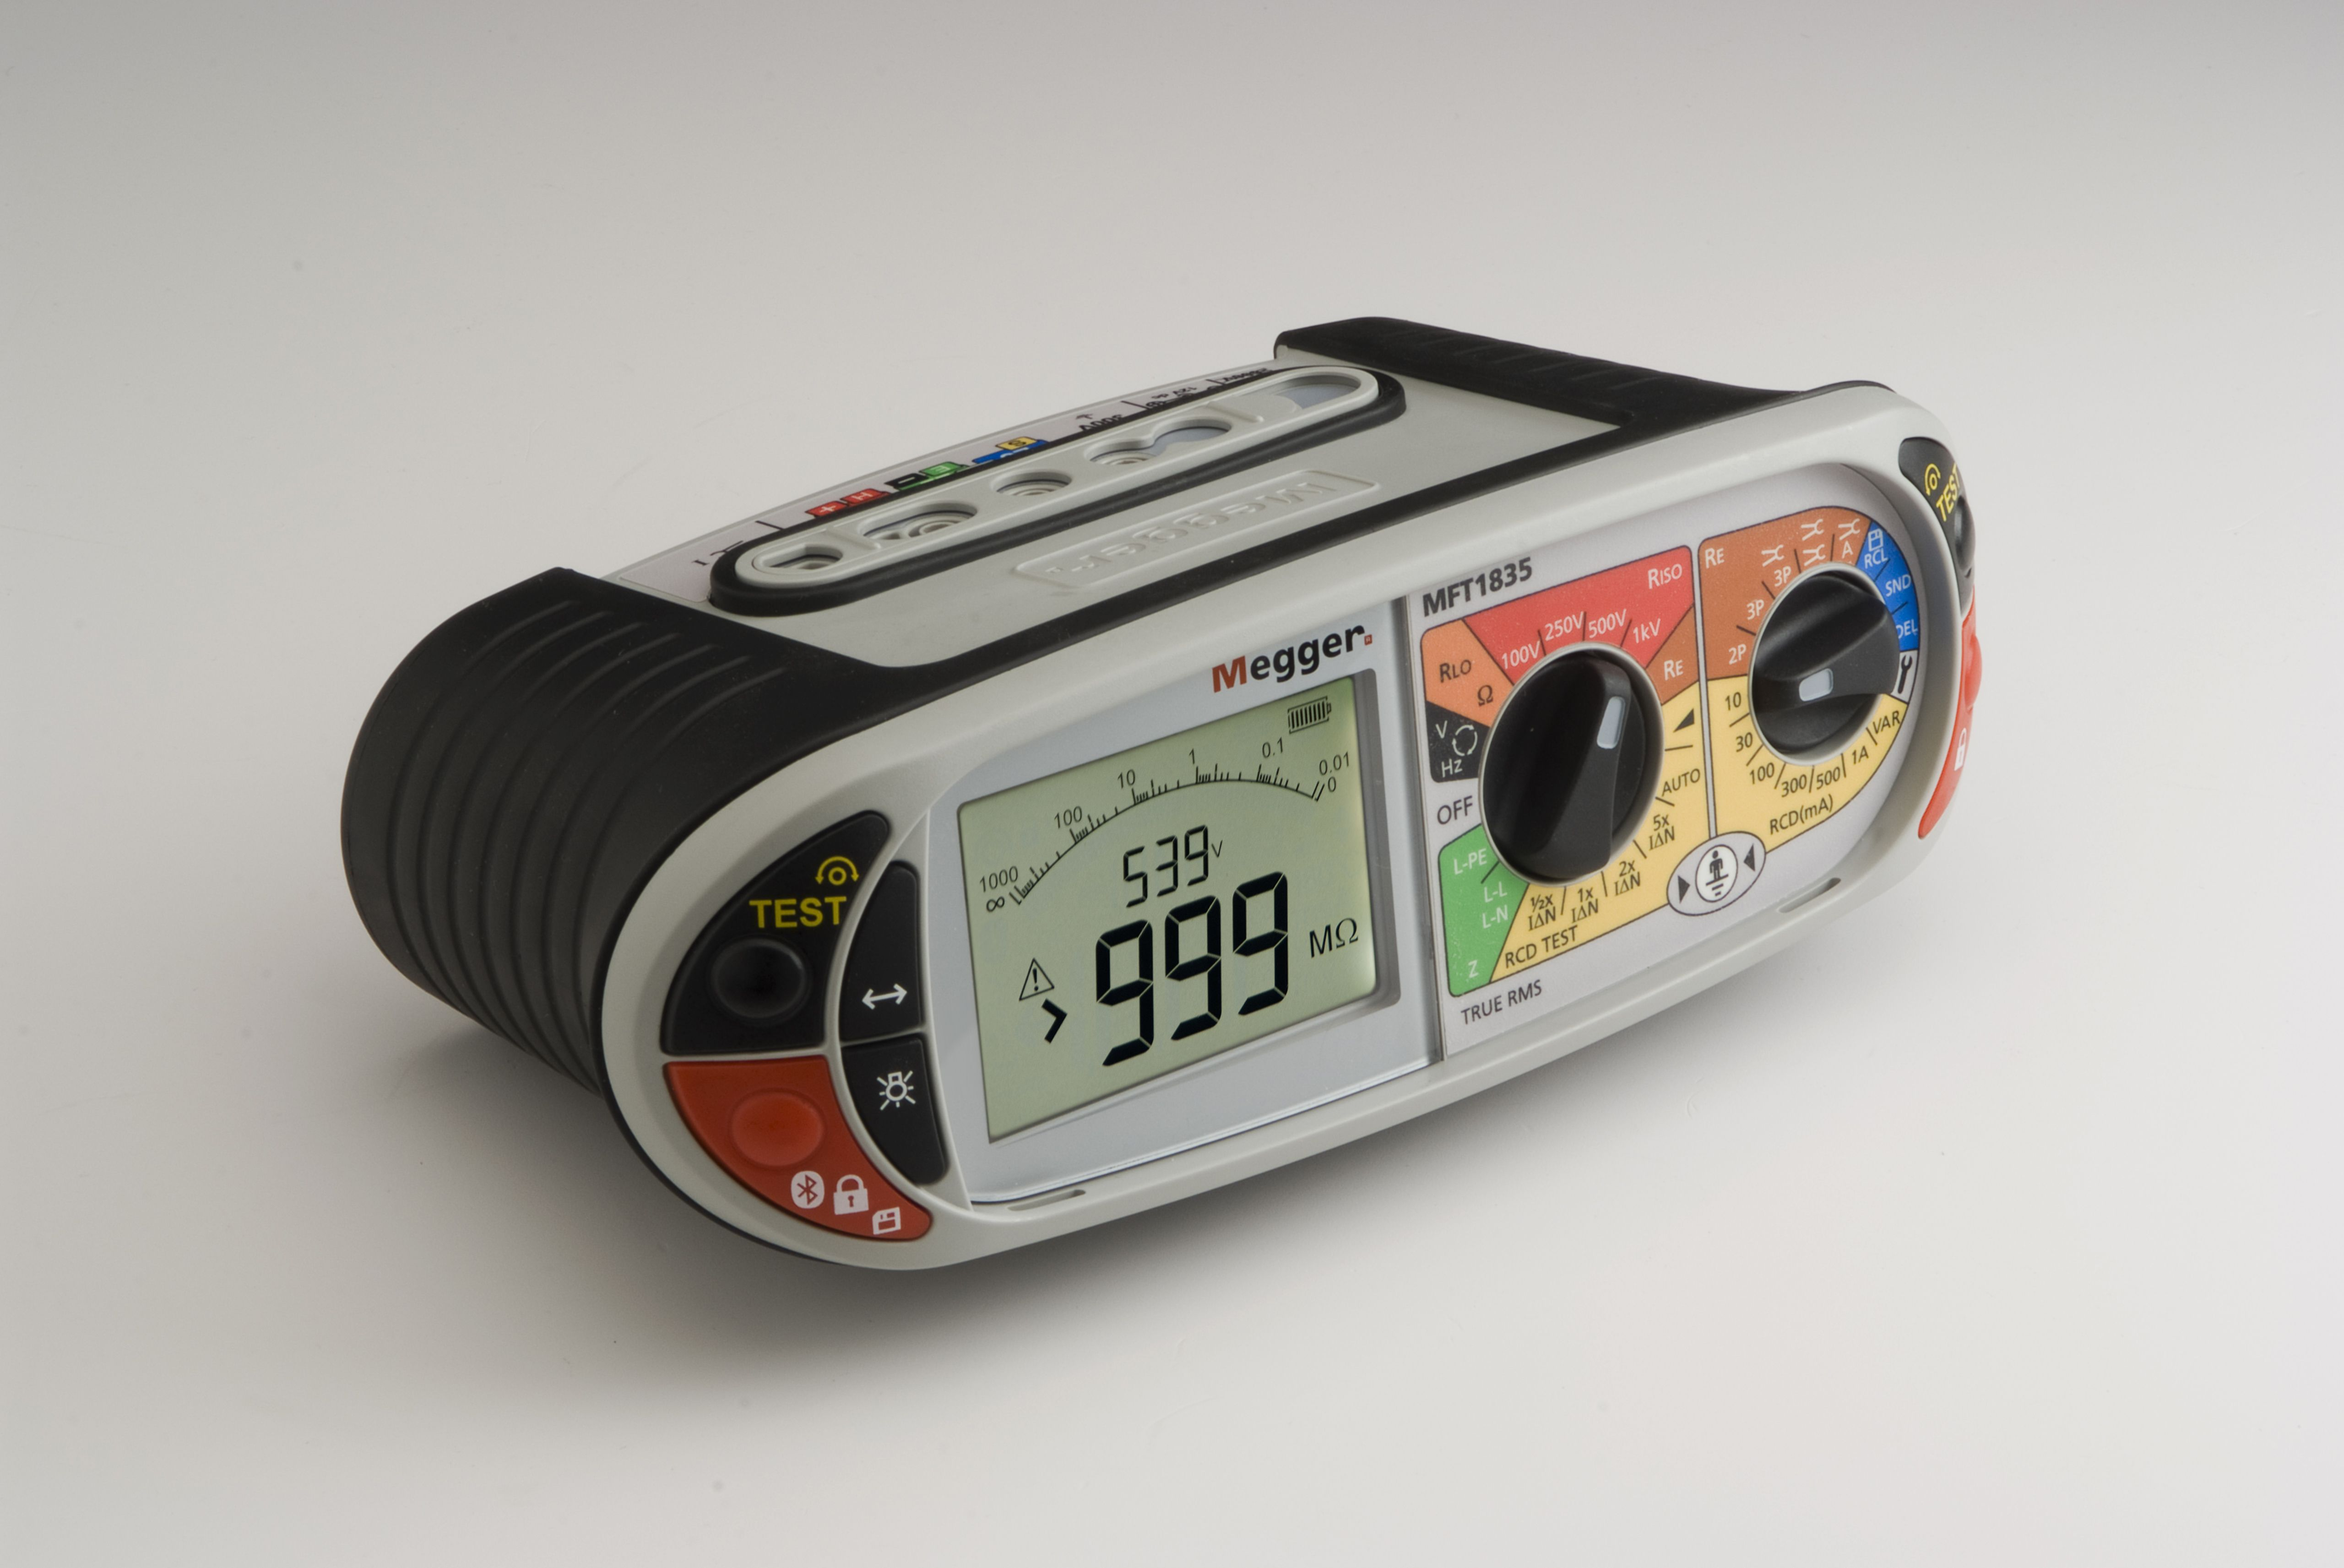 Megger MFT1835 Multifunction Tester for checking and certifying ...